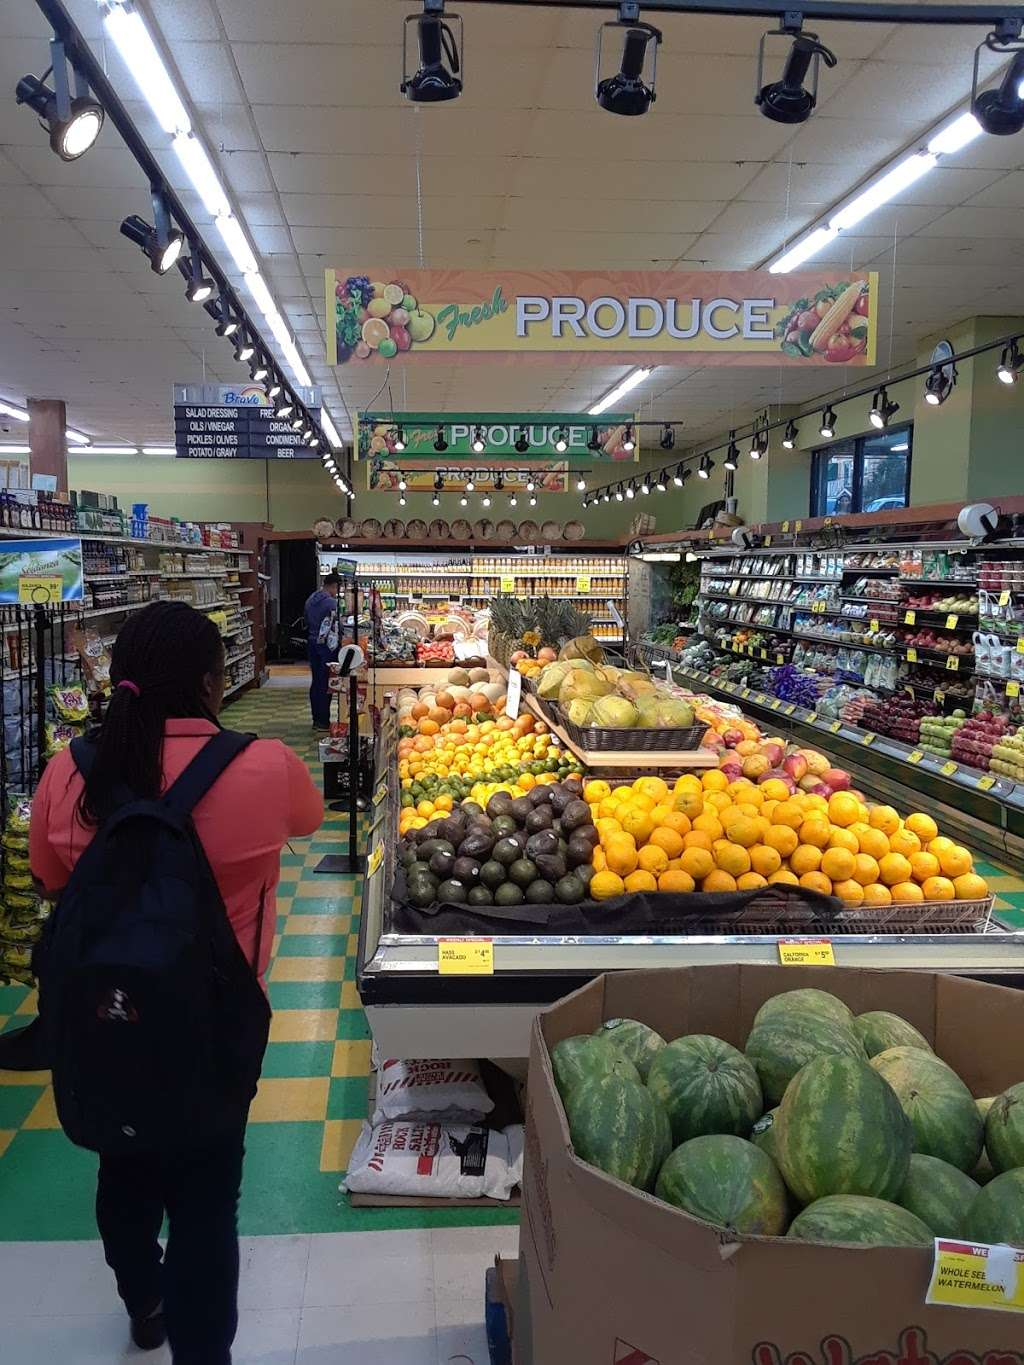 Bravo Supermarkets - supermarket  | Photo 5 of 10 | Address: 455 Sutter Ave, Brooklyn, NY 11212, USA | Phone: (718) 975-2205